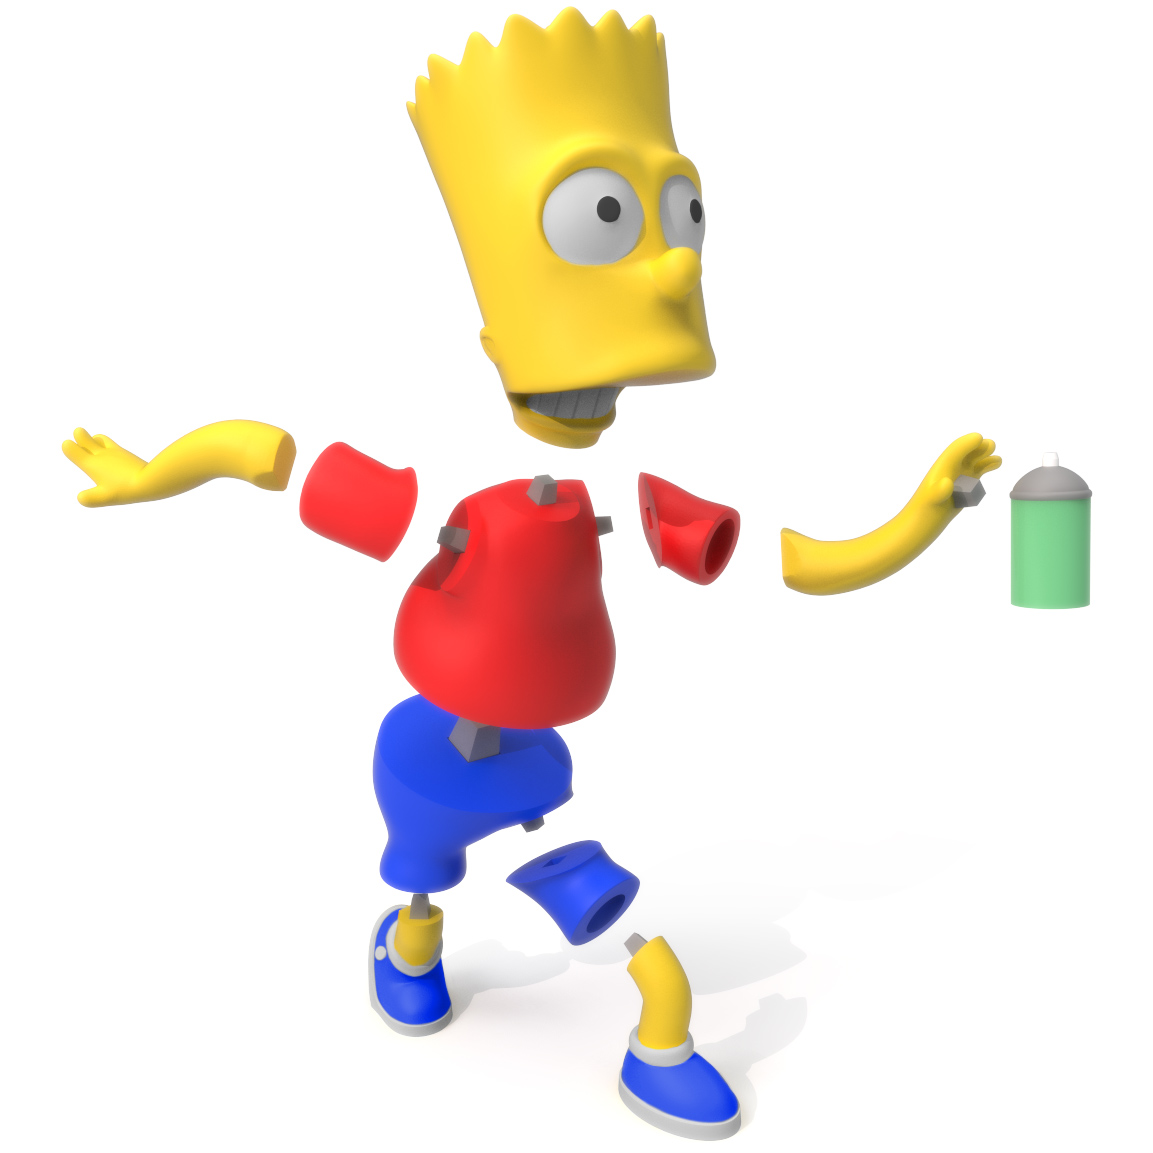 Bart Simpson Exploded, 3D Printer Models